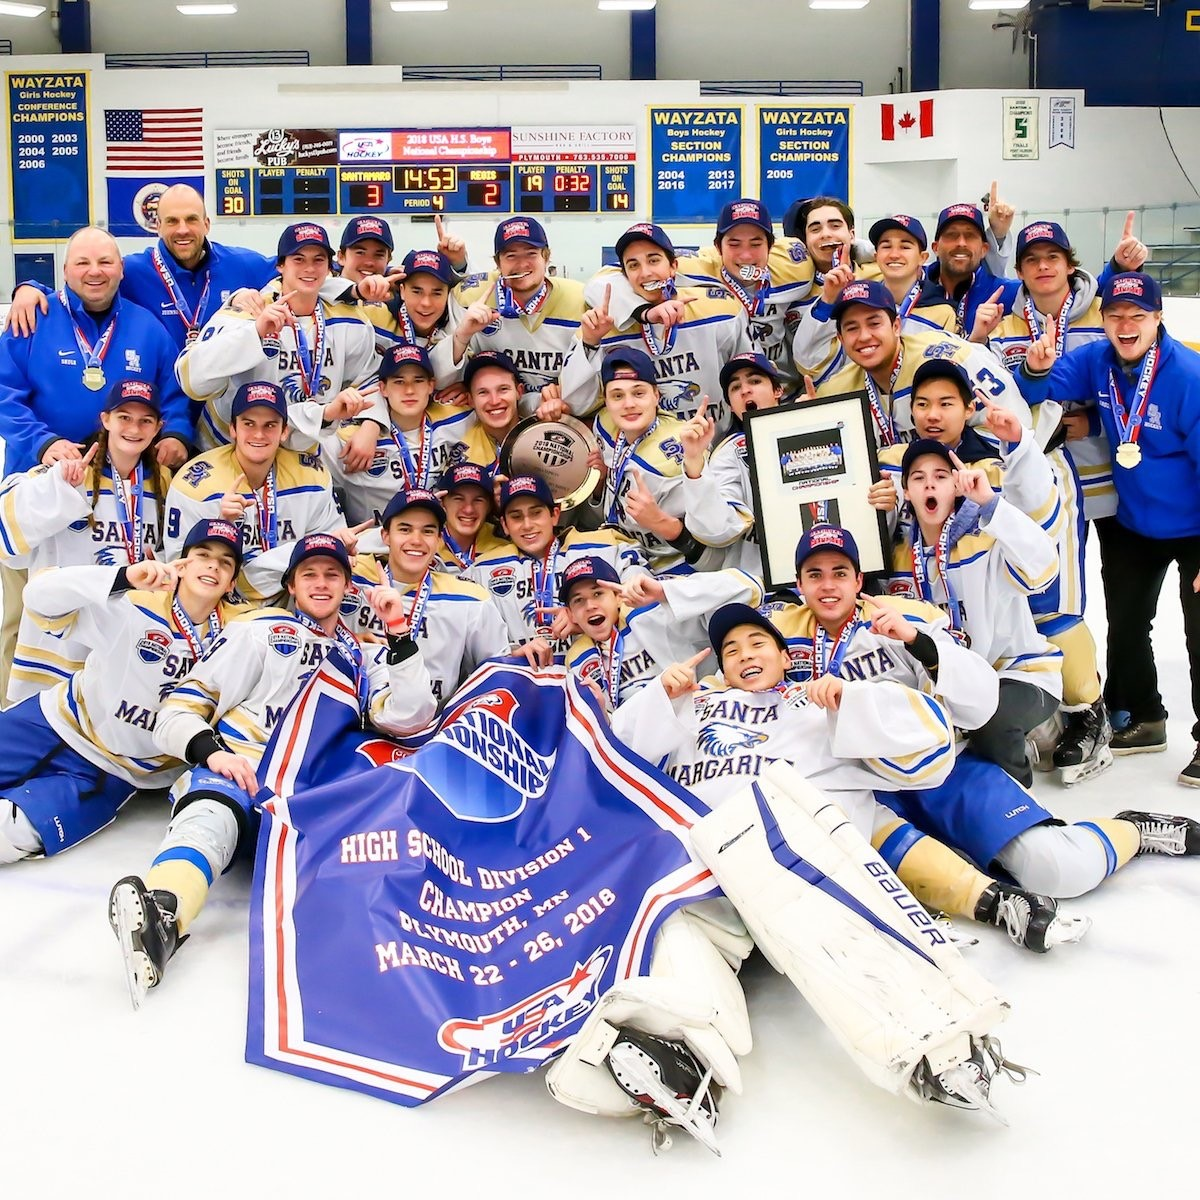 SMCHS Ice Hockey Wins National Championship